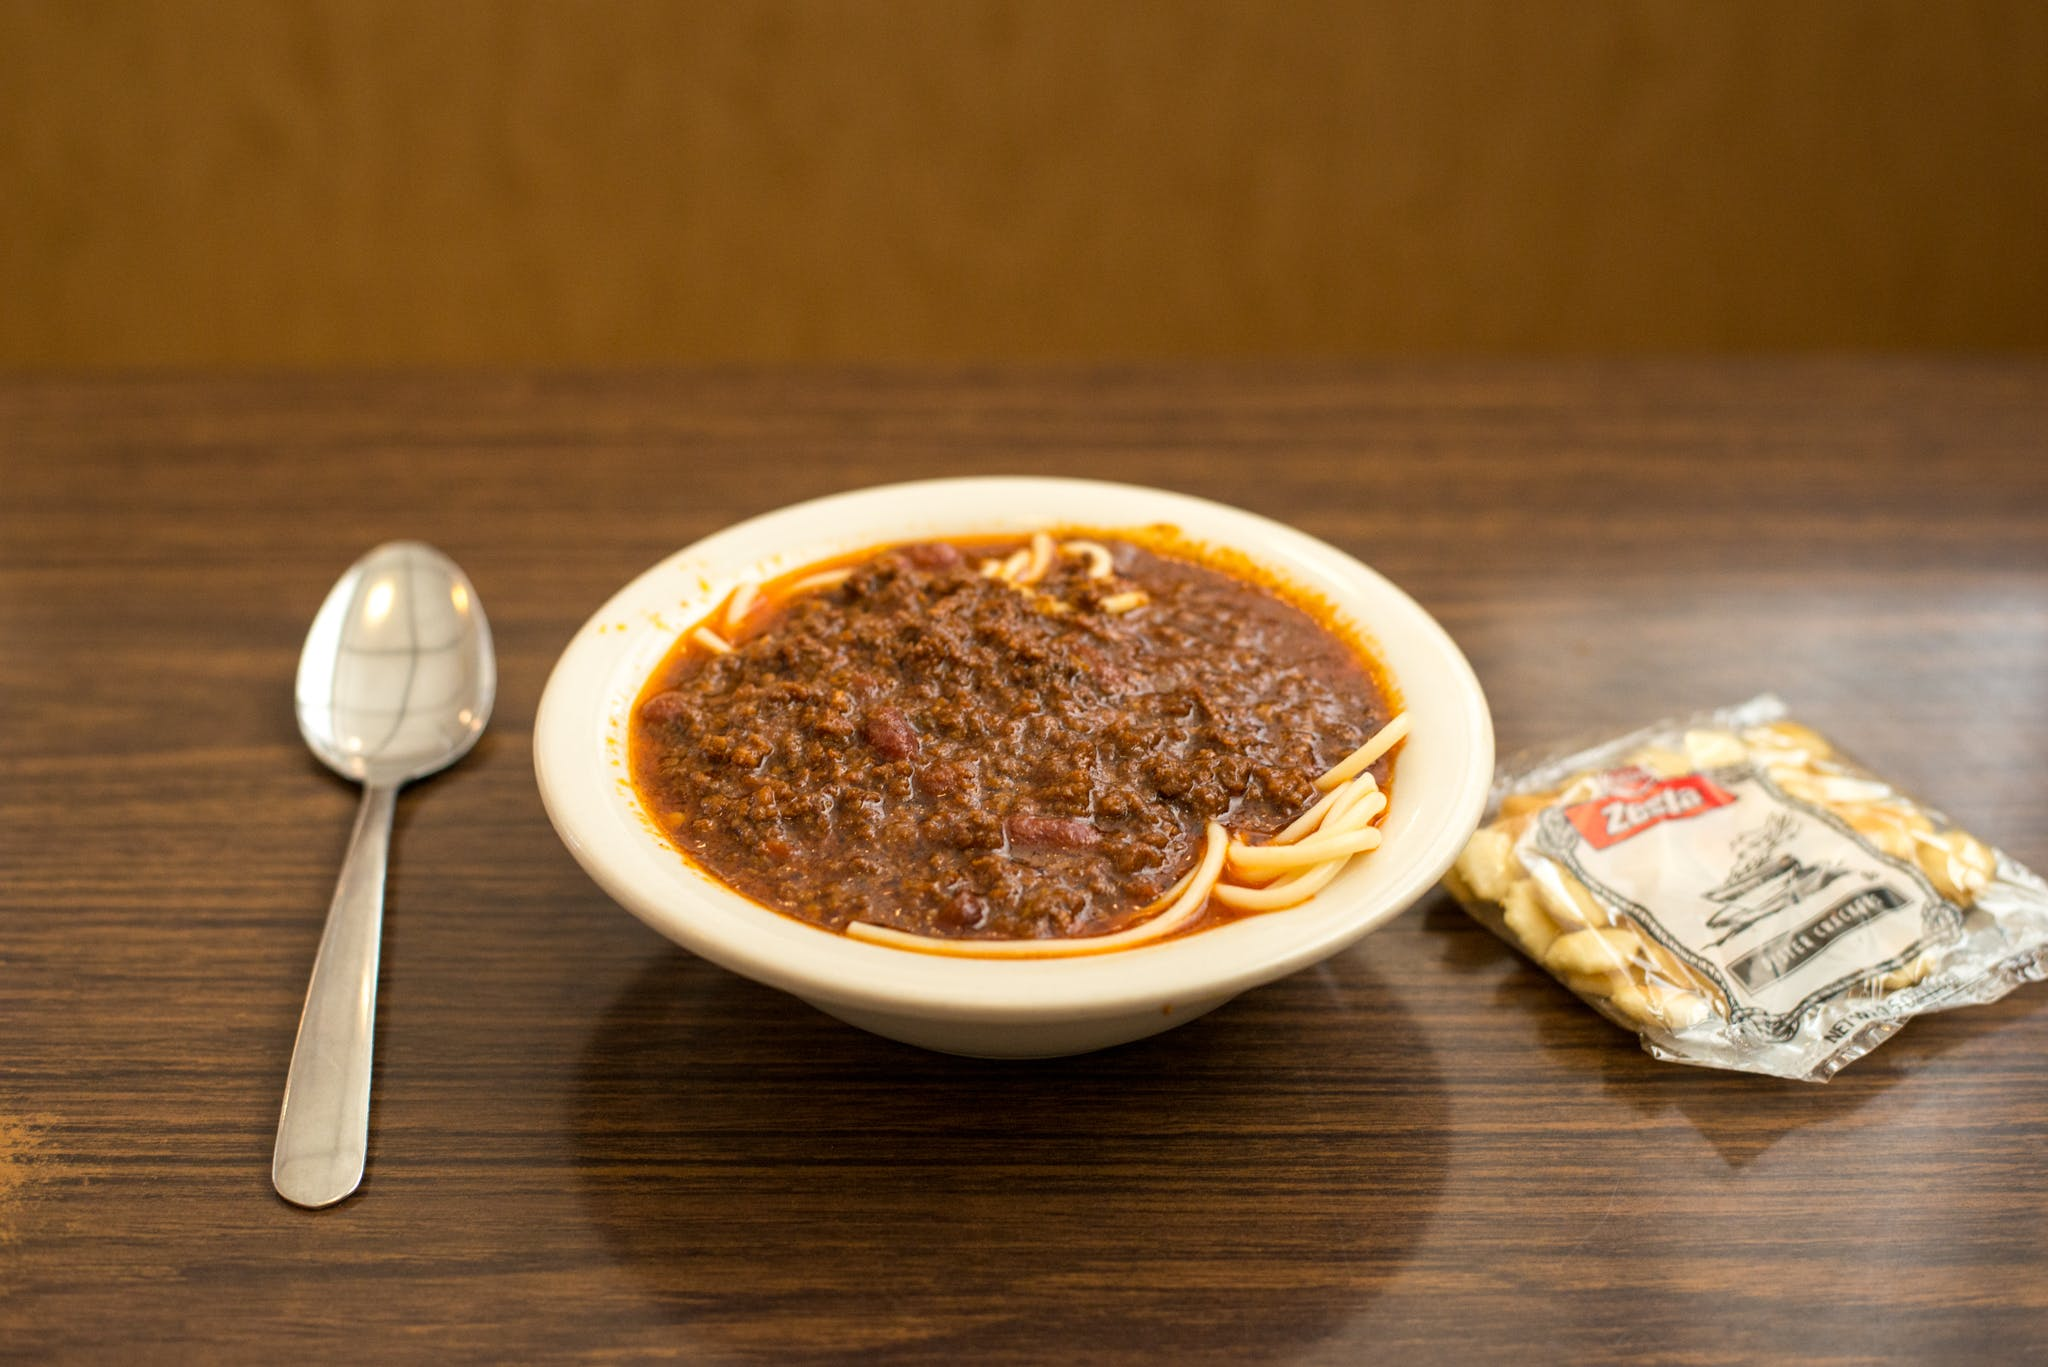 Chili To Go from Kroll's East in Green Bay, WI